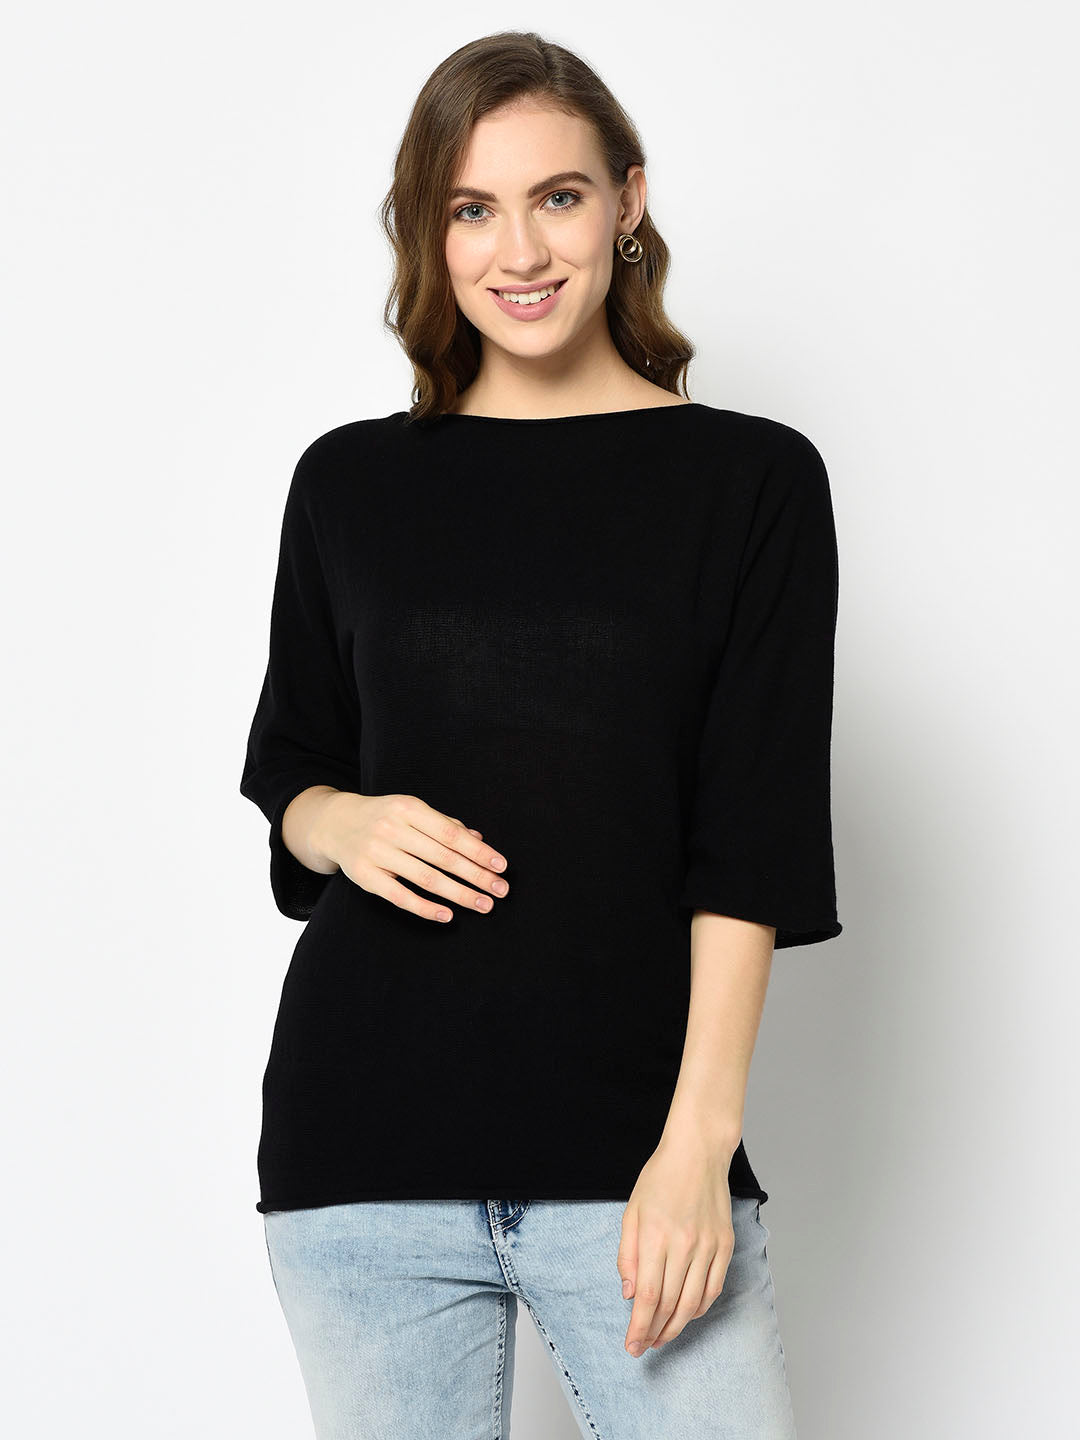 Black Dolman Sleeve Sweater with Bateau Neckline - Avsoy